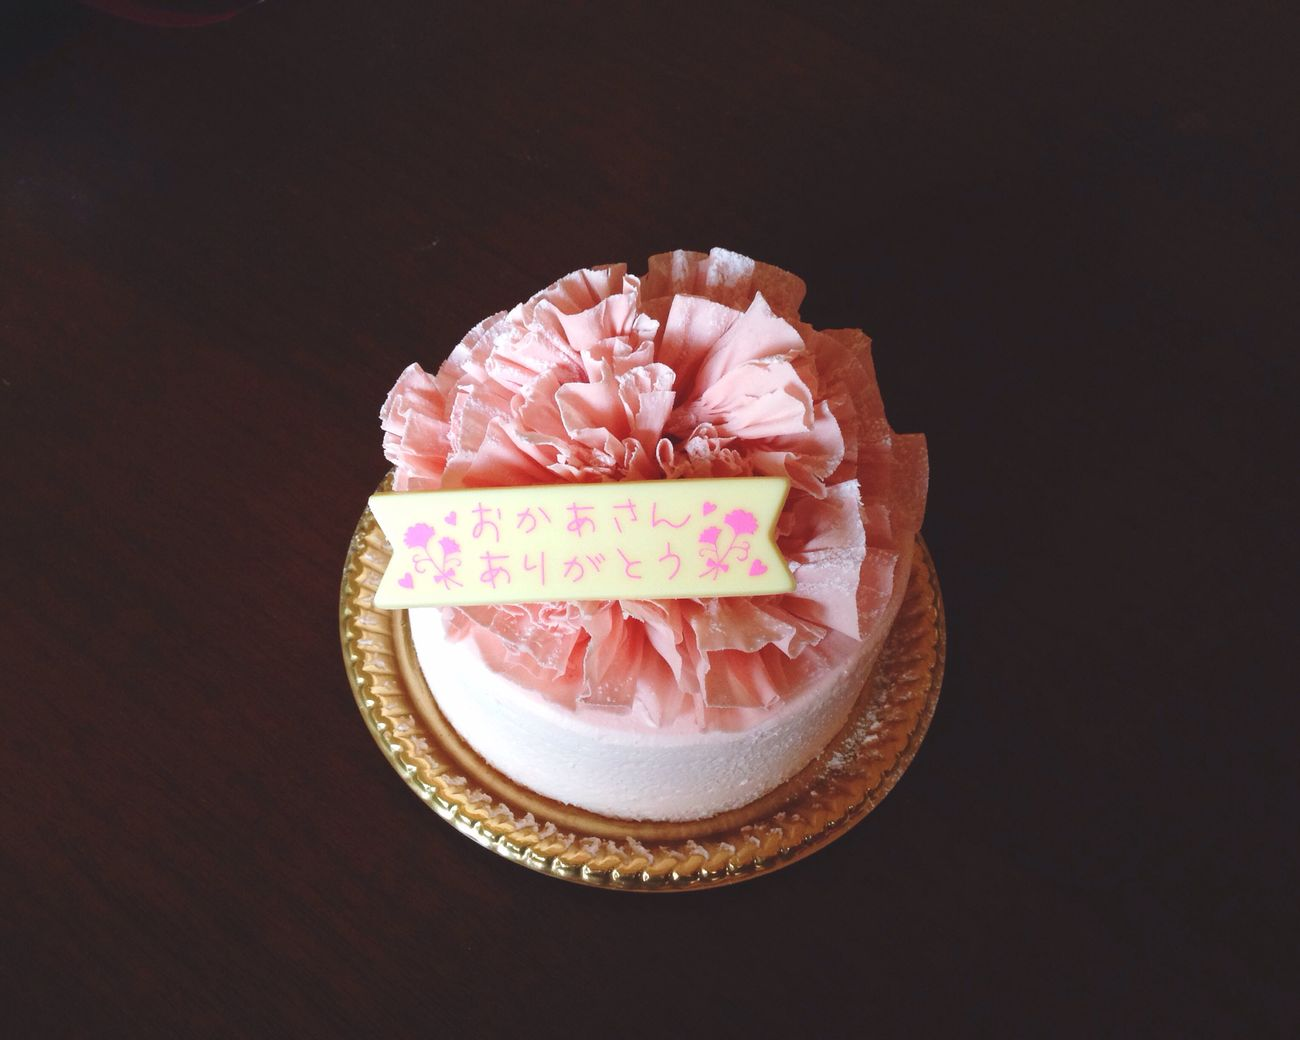 Cake Mother's Day Happymothersday EyeEm Best Shots Thankyou 母の日 ケーキ カーネーション Pink